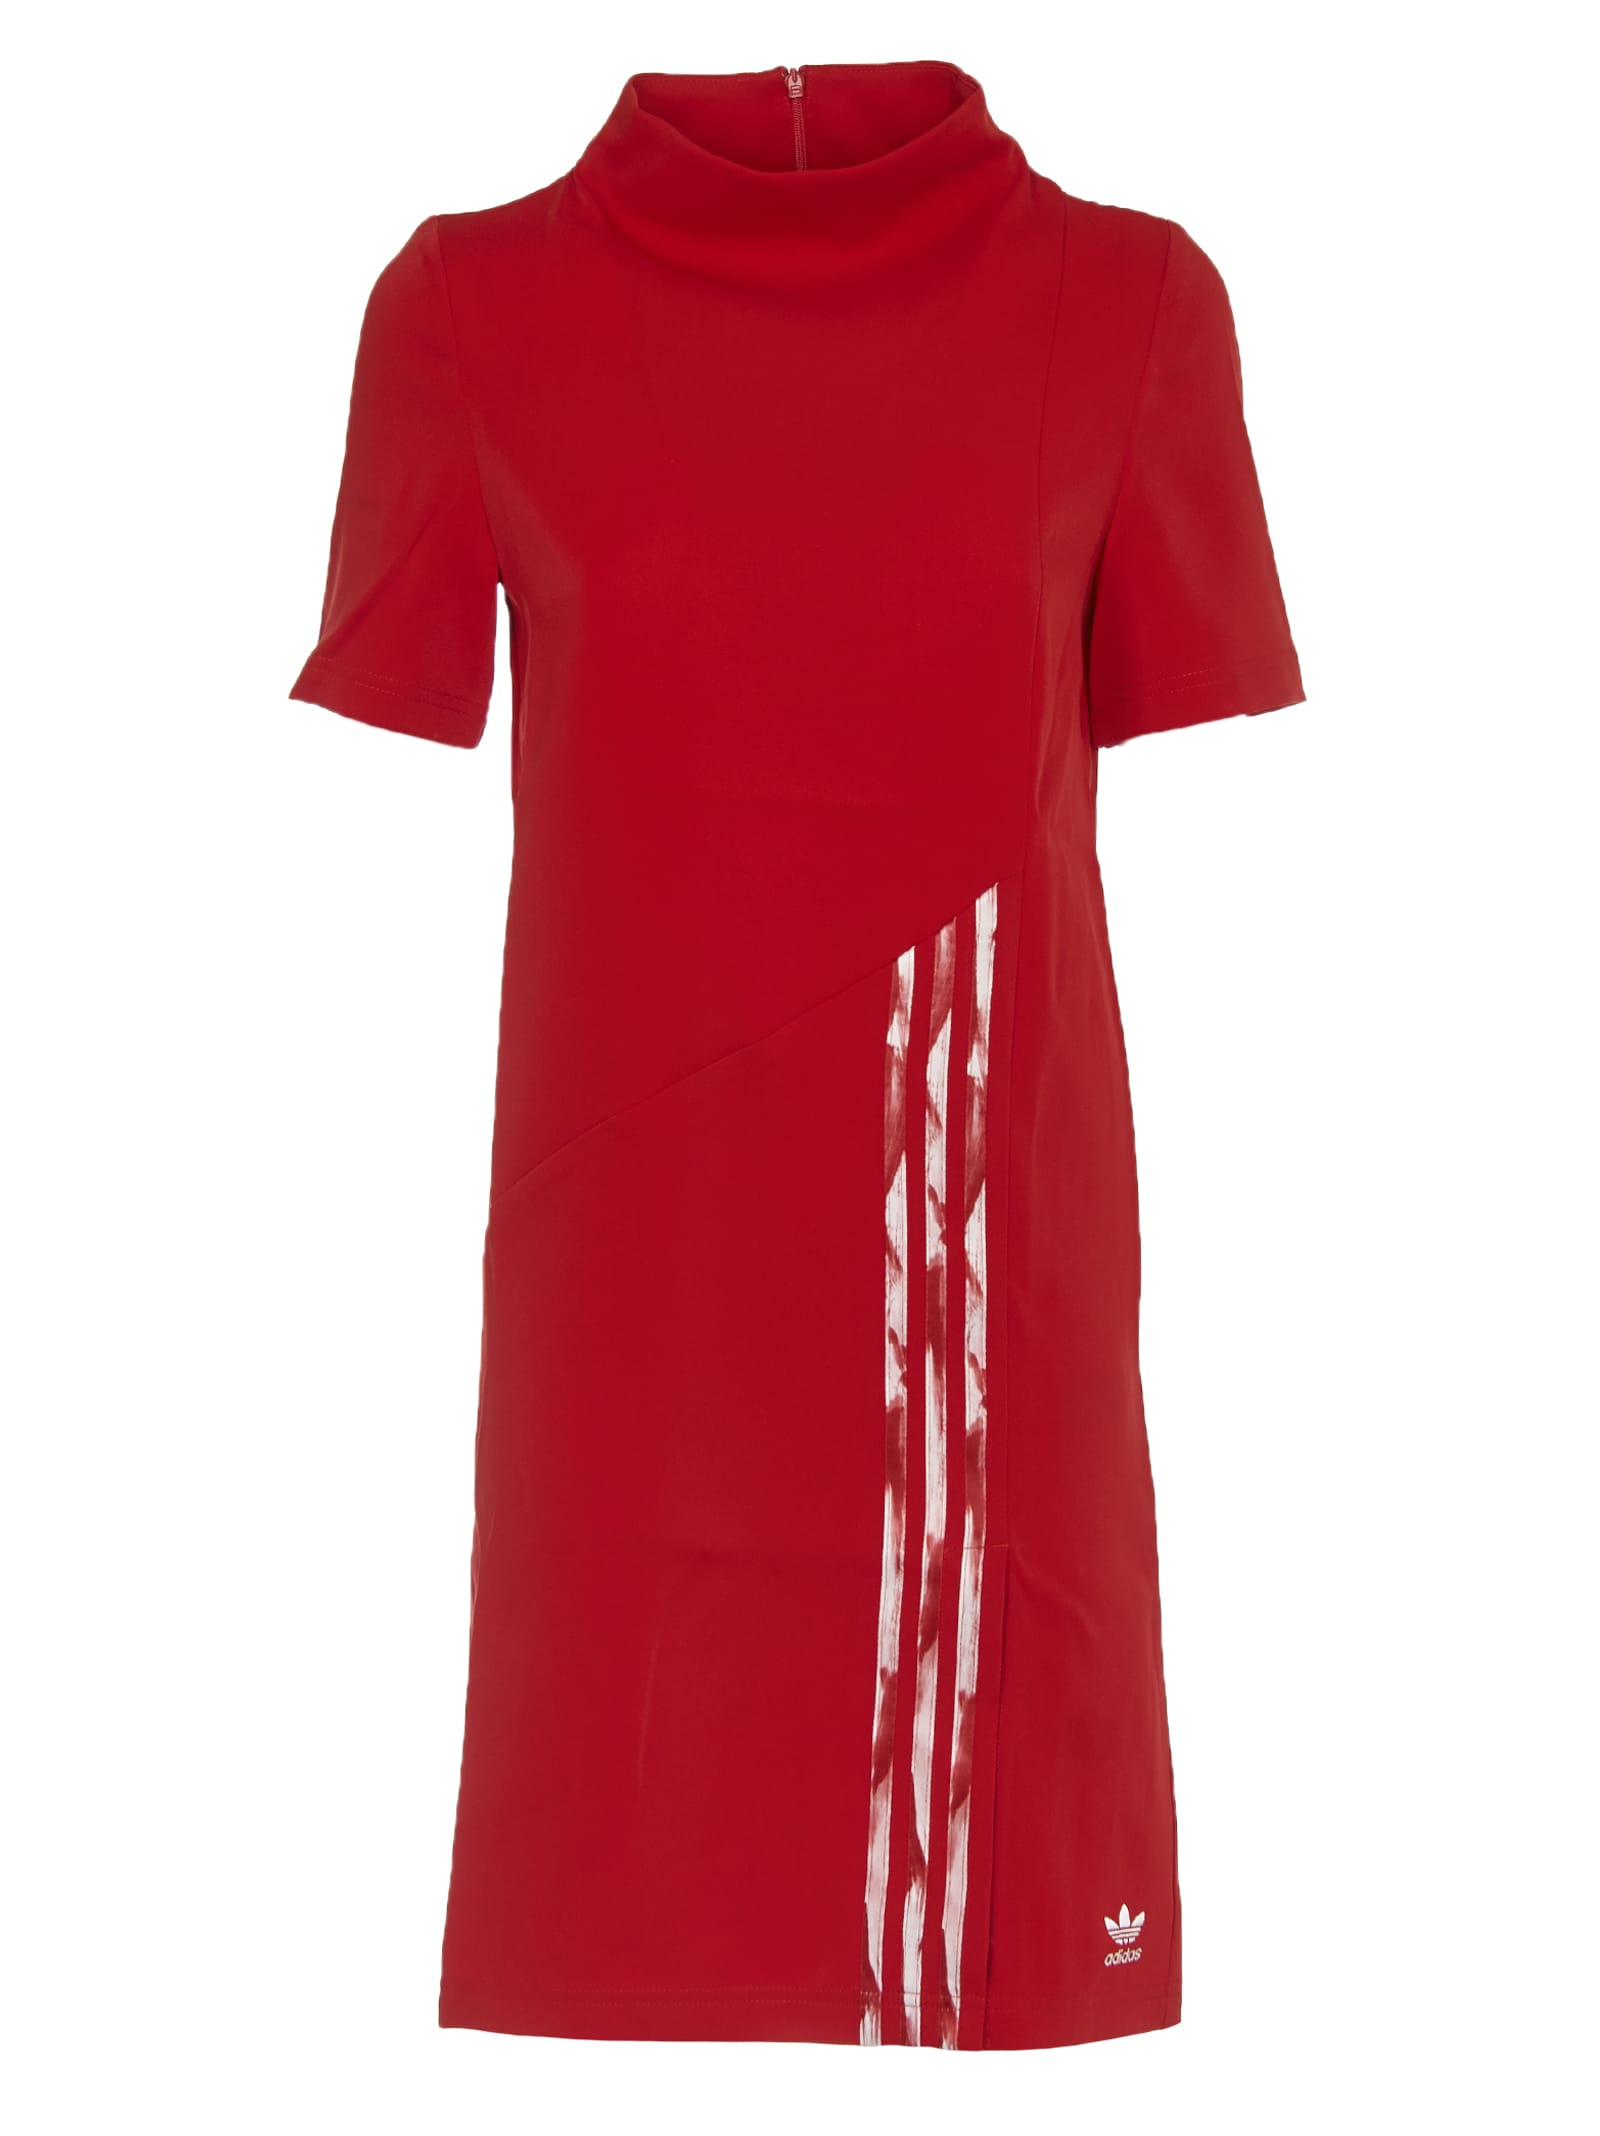 Adidas Originals Adidas Originals- Danielle Cathari Red Dress